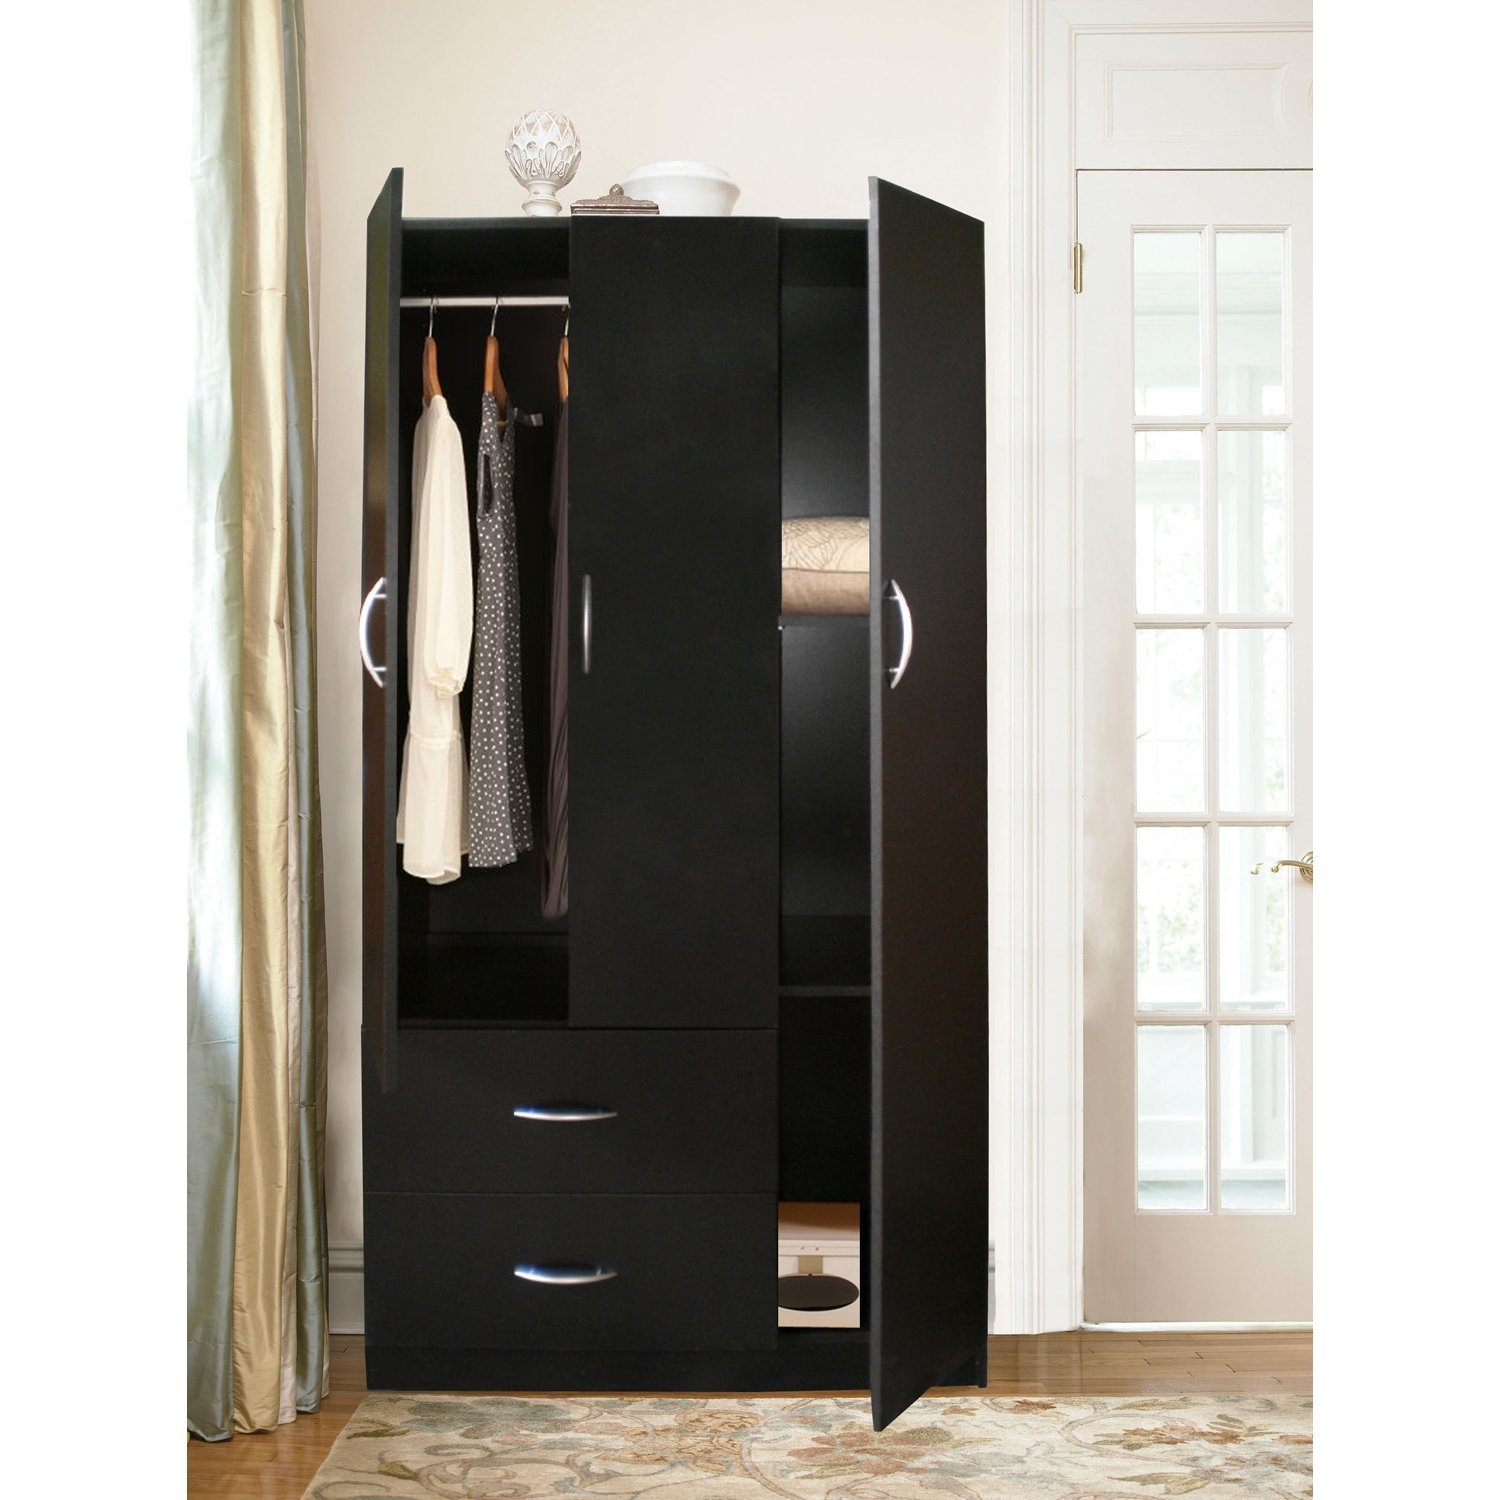 3 Door Wardrobe Storage Cabinet With 2 Drawers